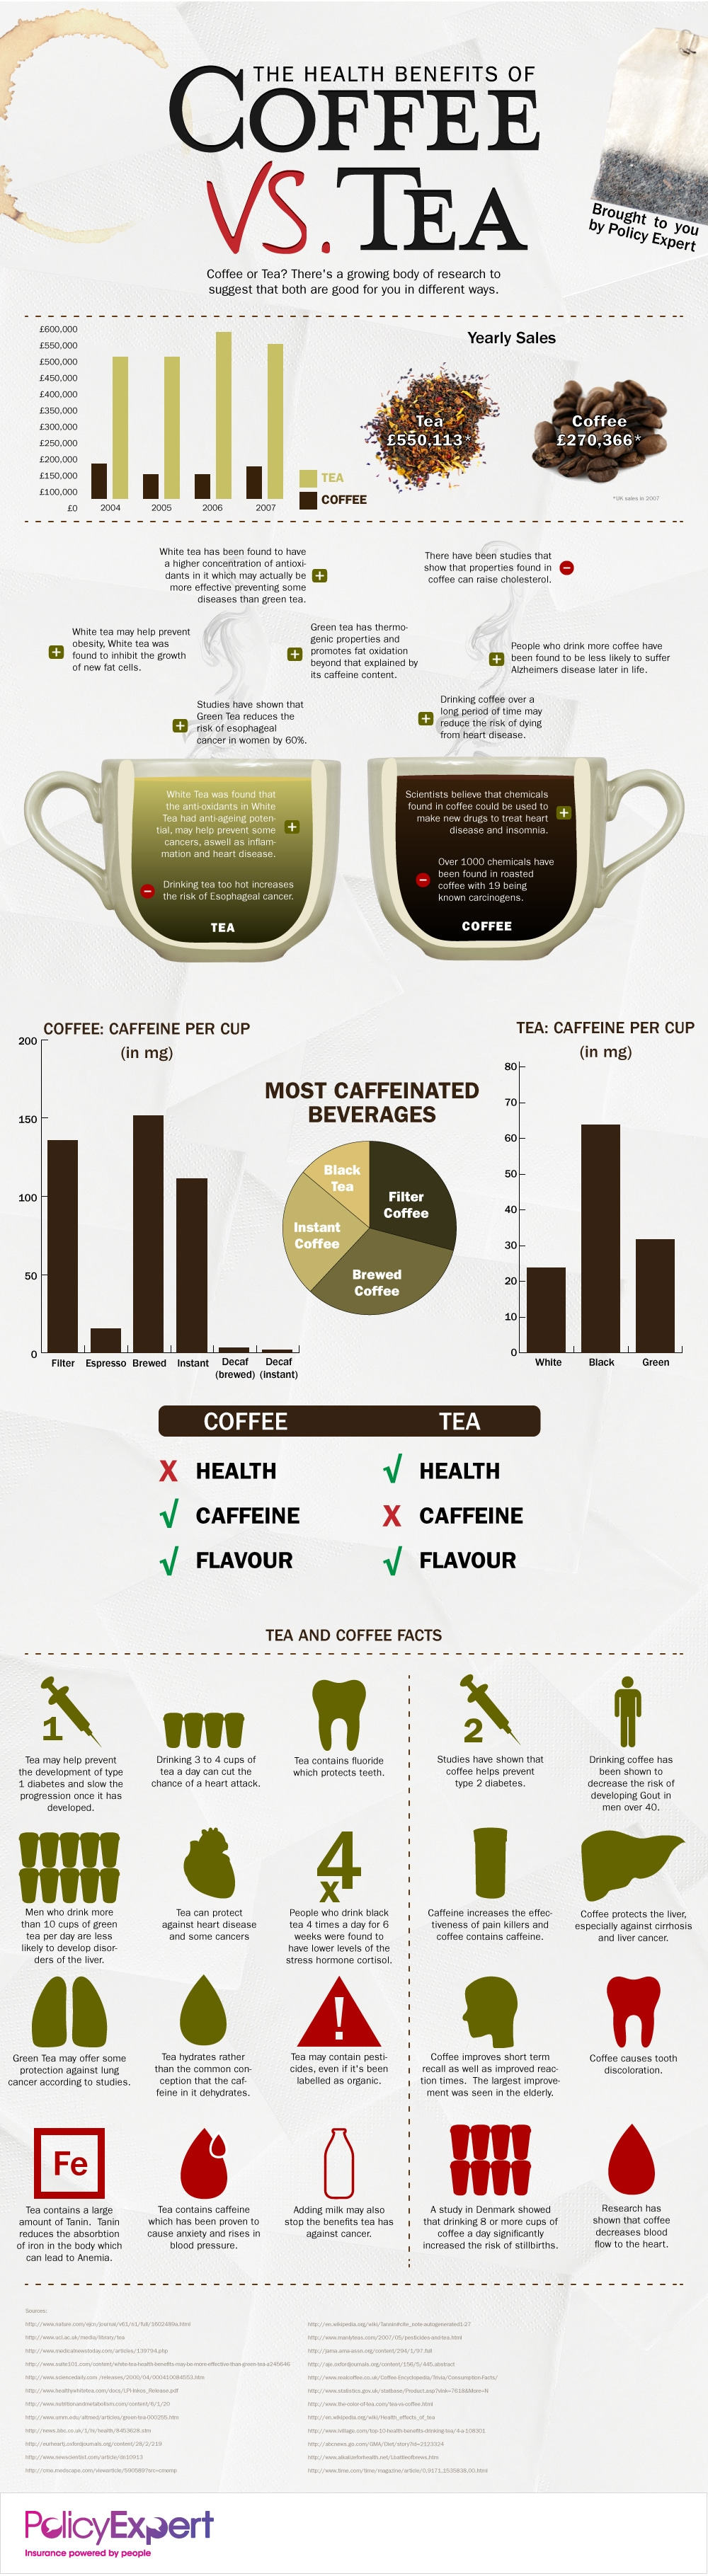 Coffee vs. Tea: The Health Benefits Compared